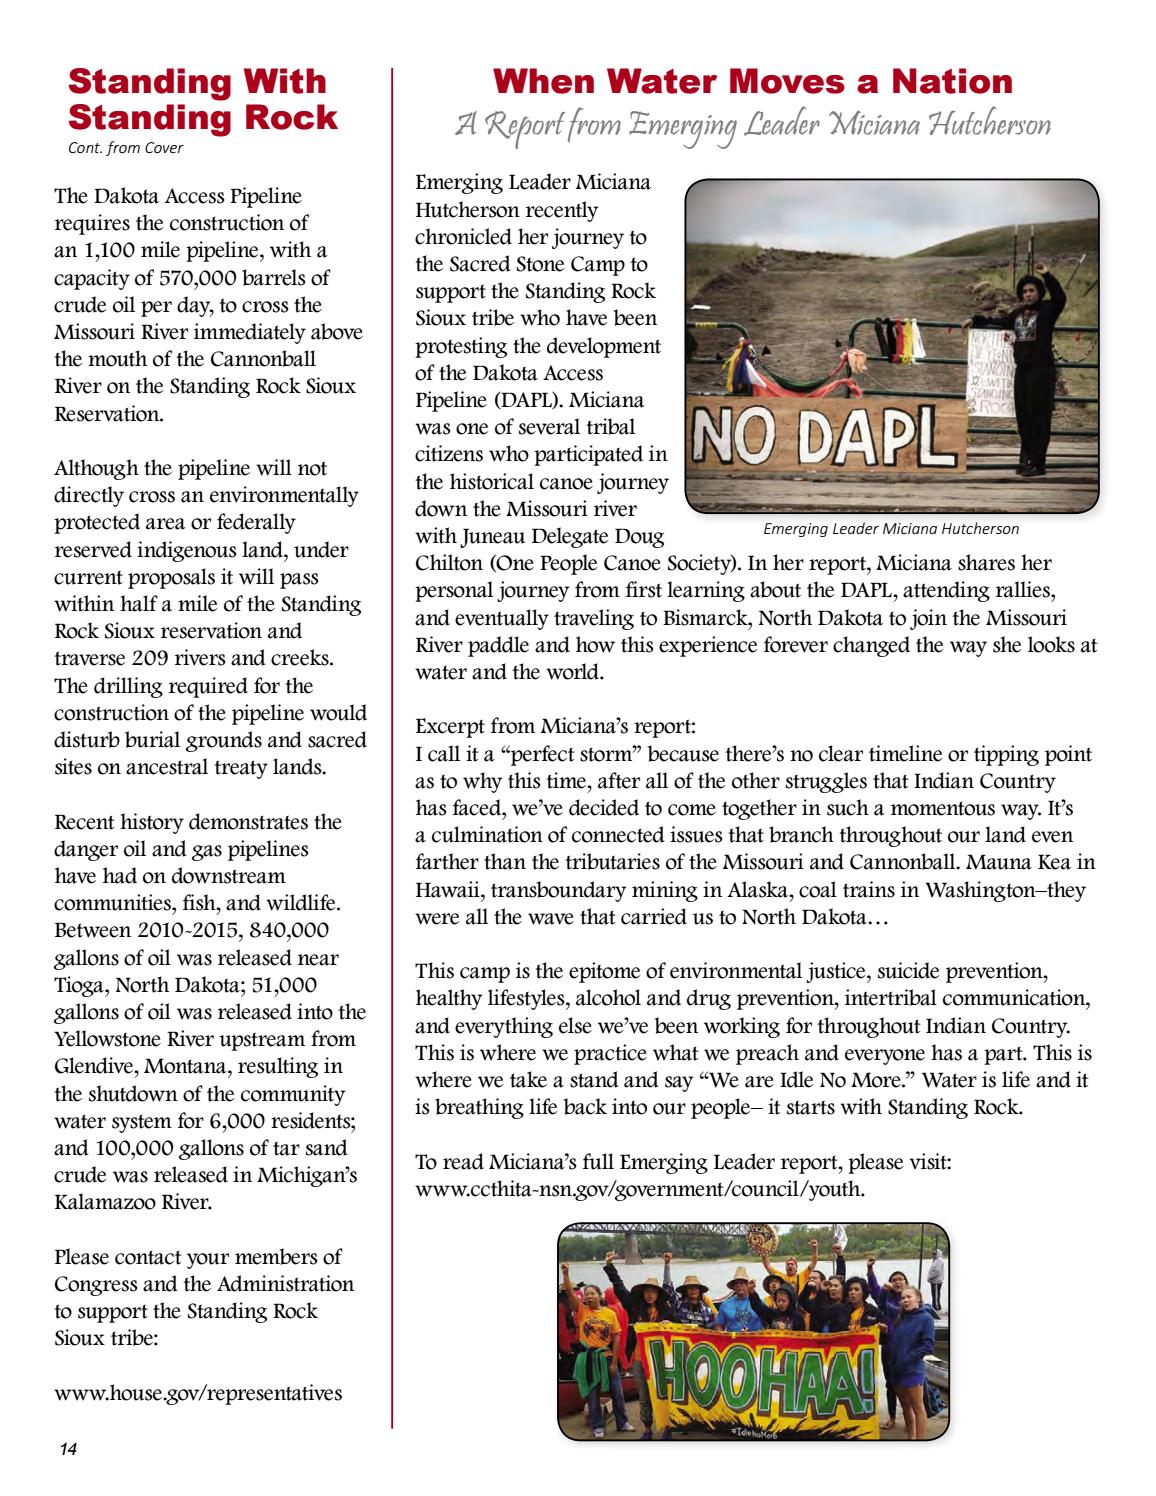 3rd Quarter 2016 Tribal News by Central Council Tlingit